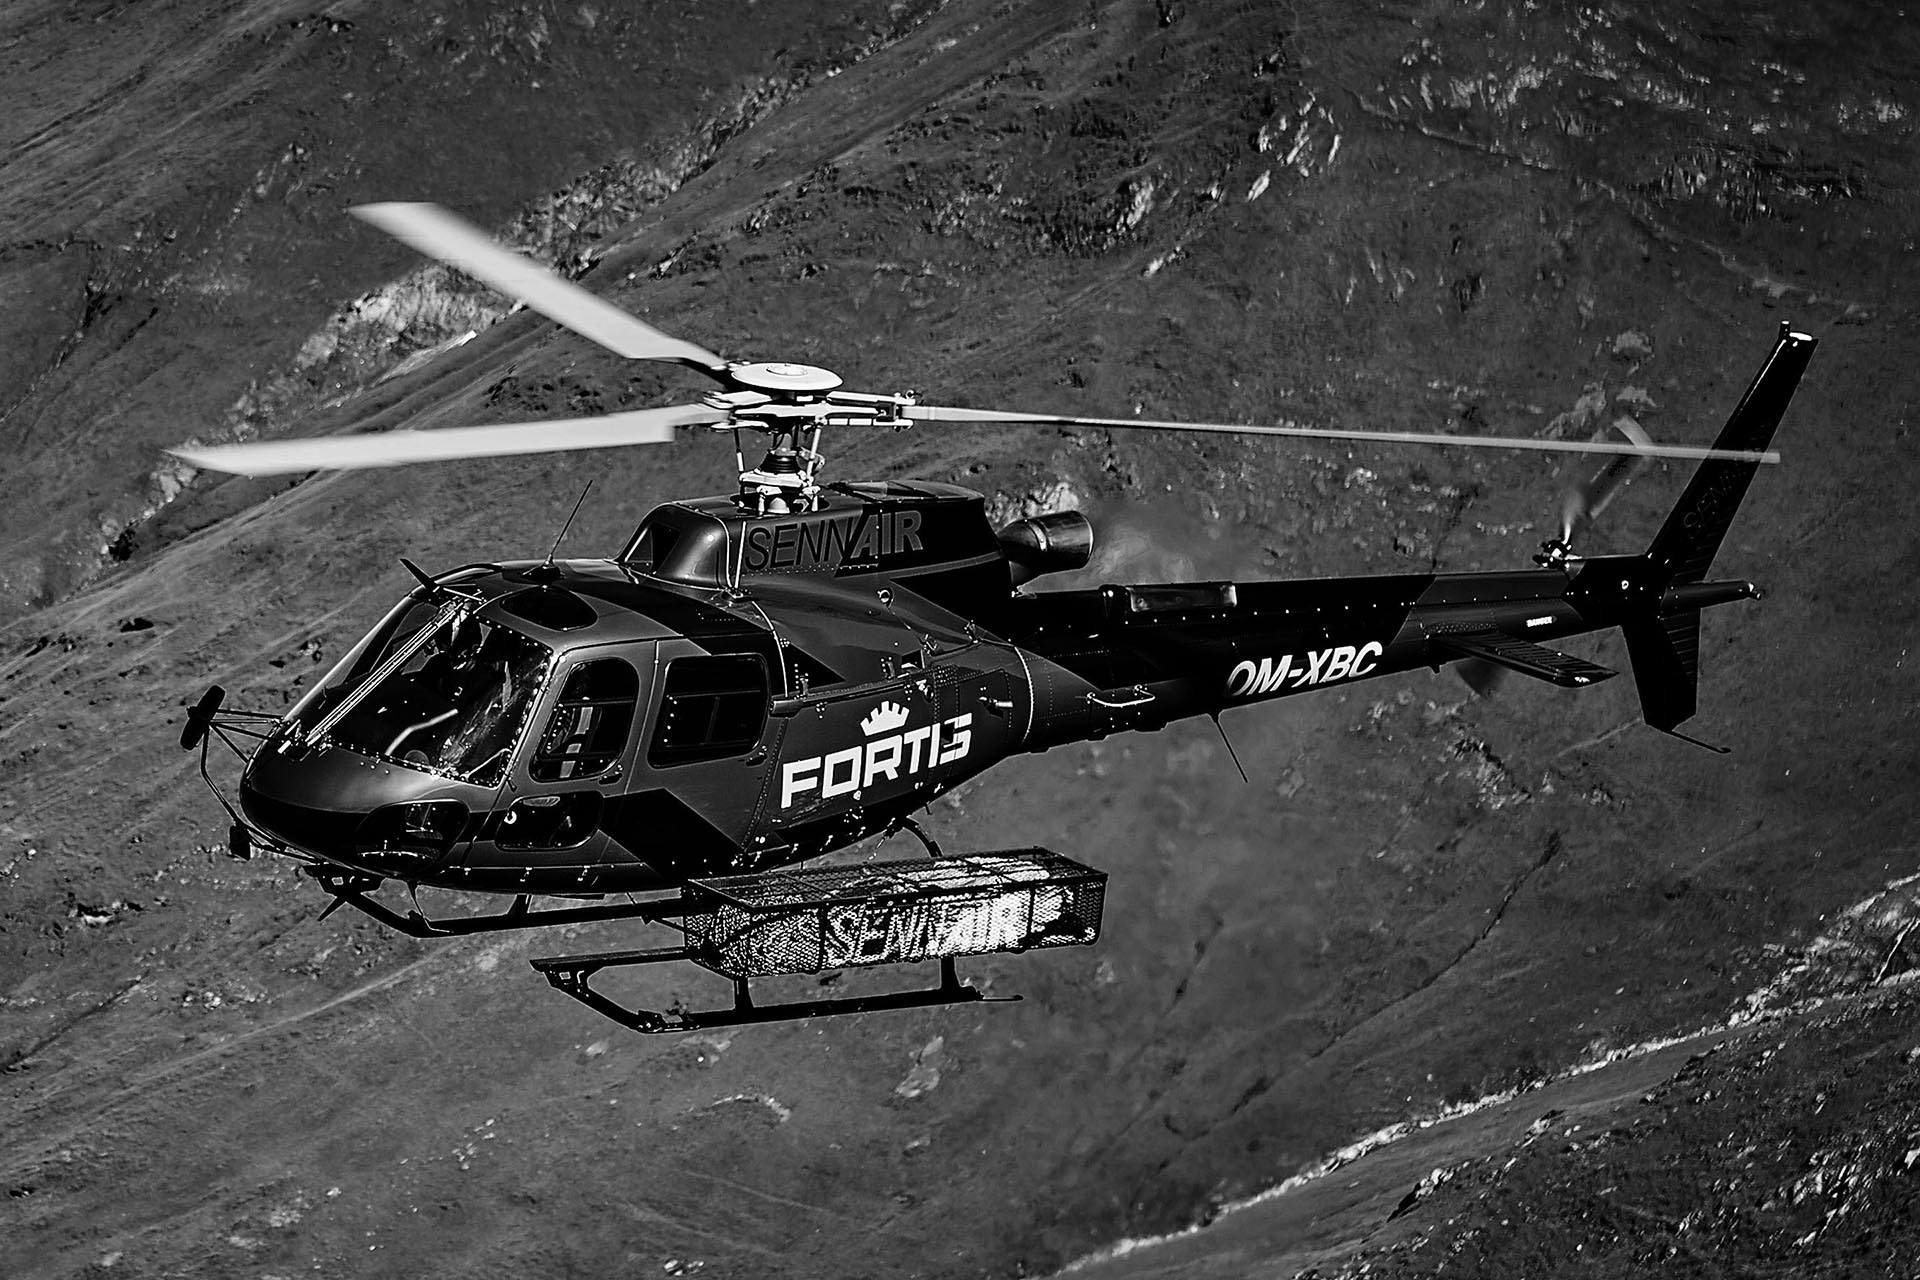 MetaDesign_Fortis_07_Helicopter